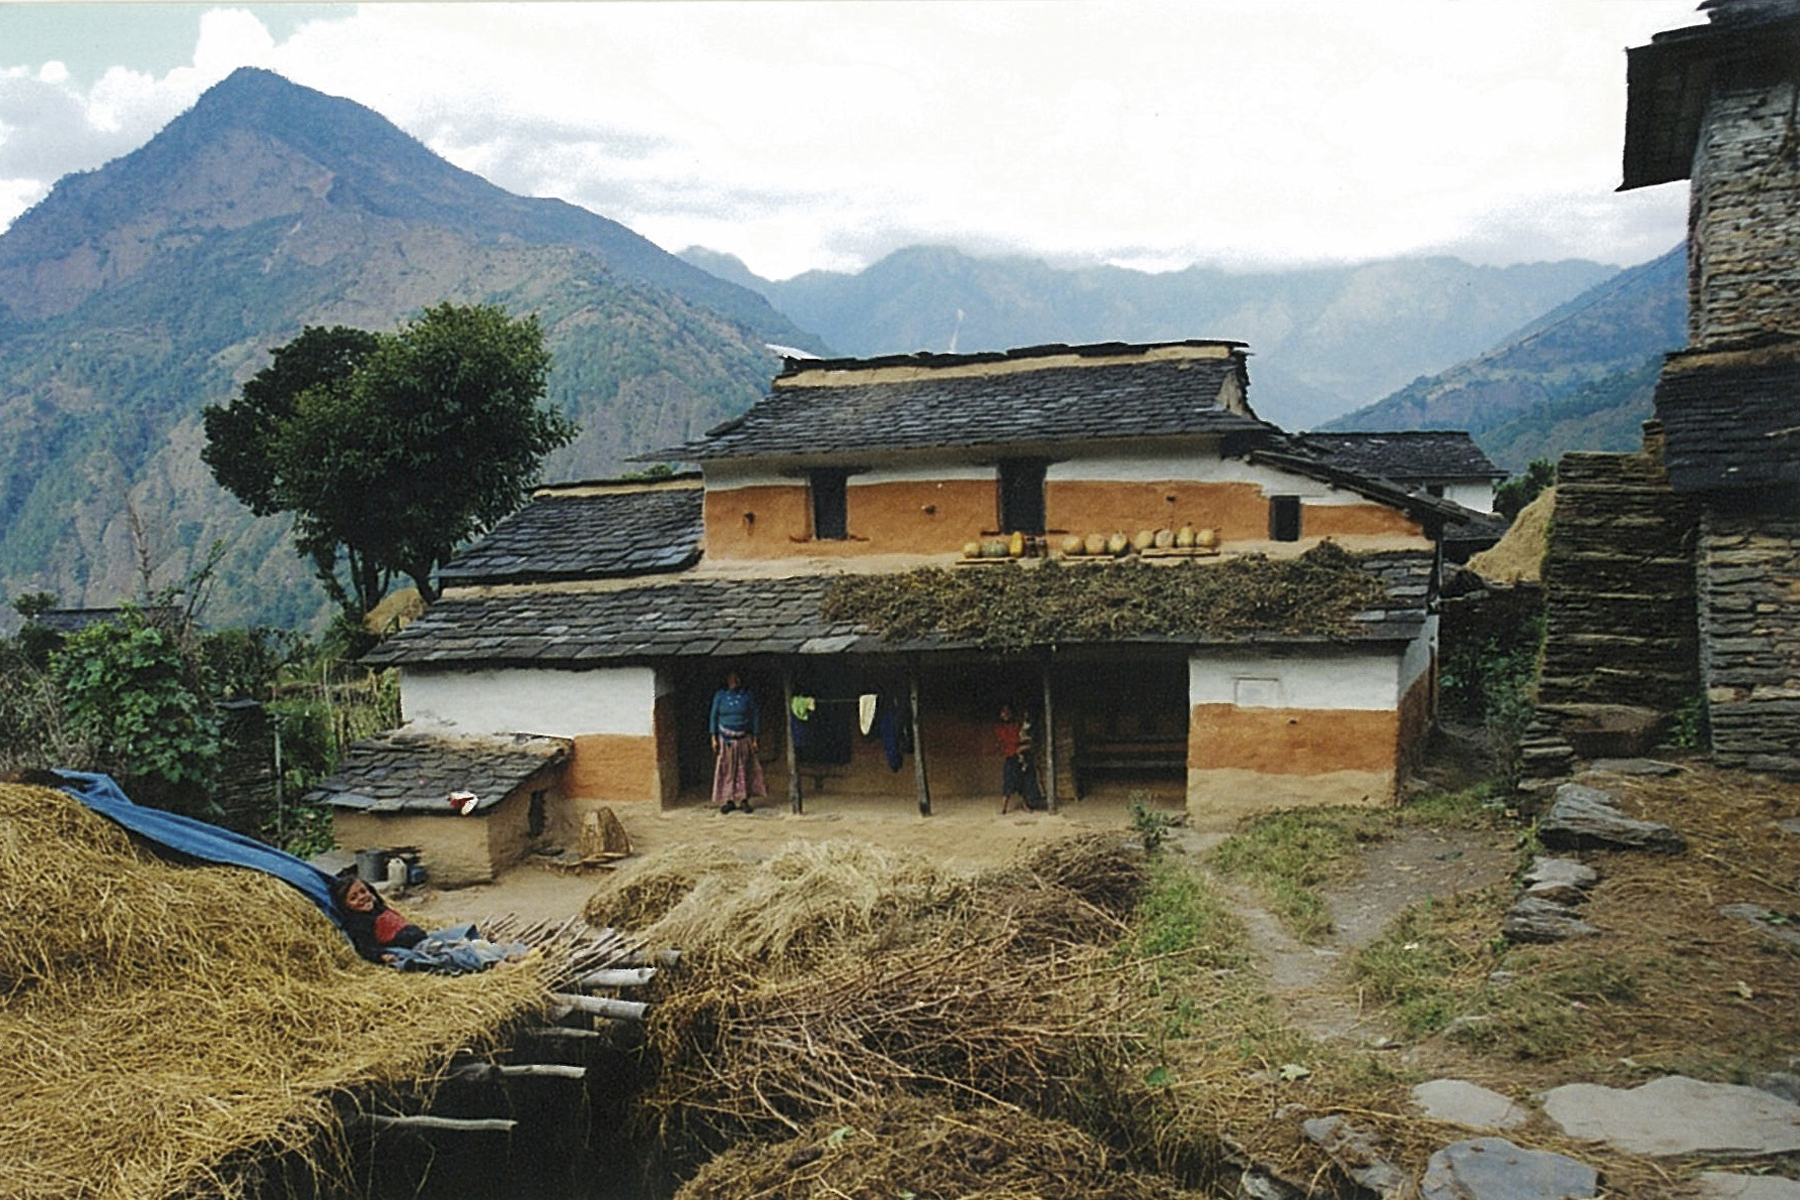 Farmstead Everest Base Camp Trek EBC Trekking Hike Hiking Nepal